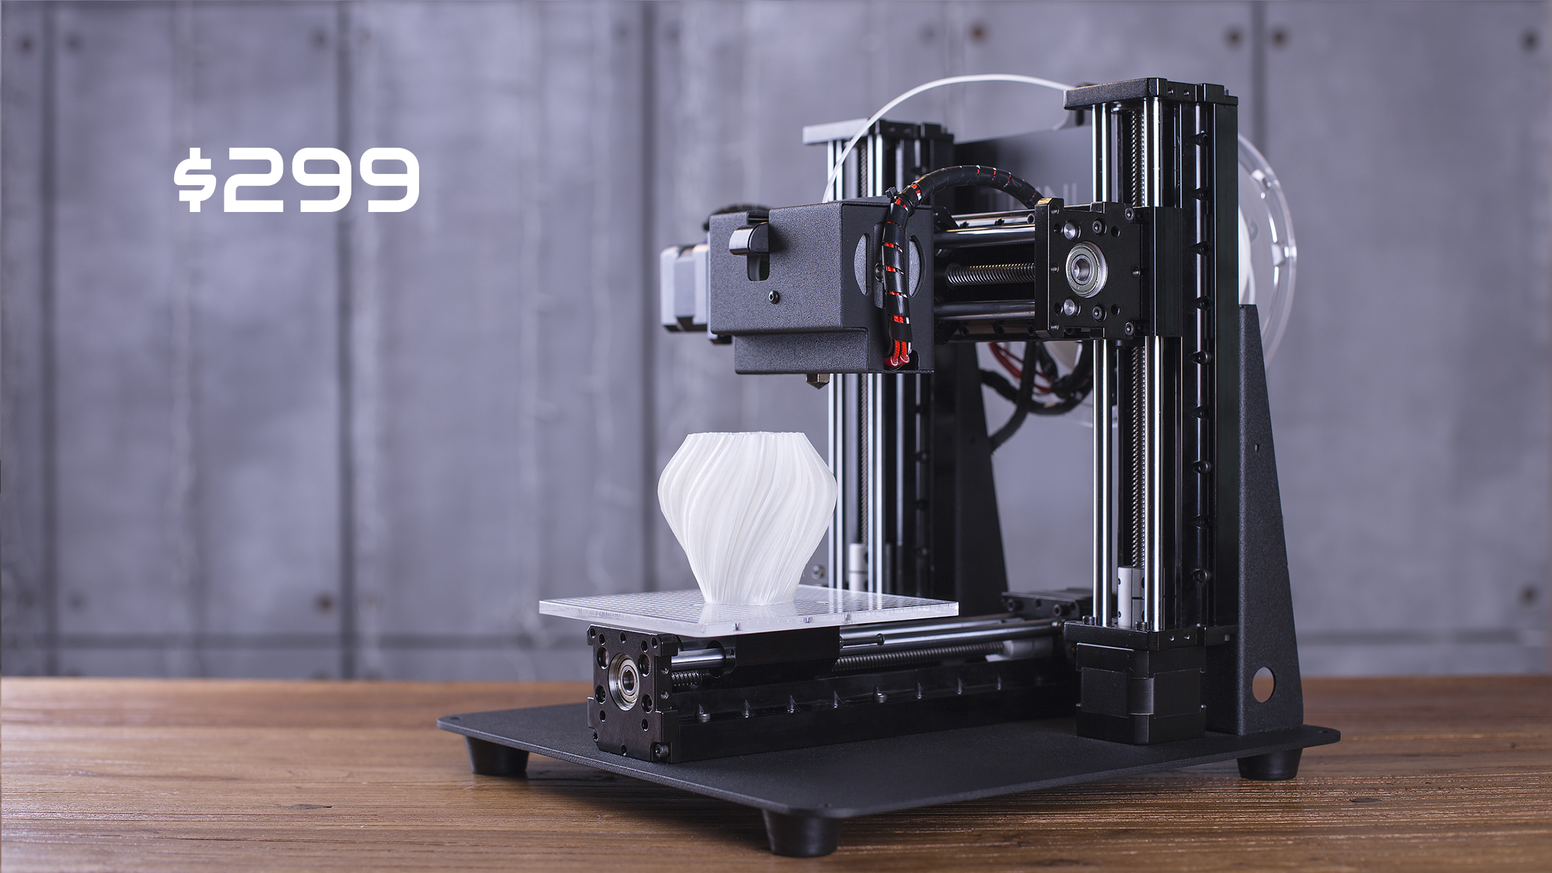 Made of industrial-grade parts. Transforms into a laser engraver in 60 seconds. Trinus is the professional 3D printer you can afford.